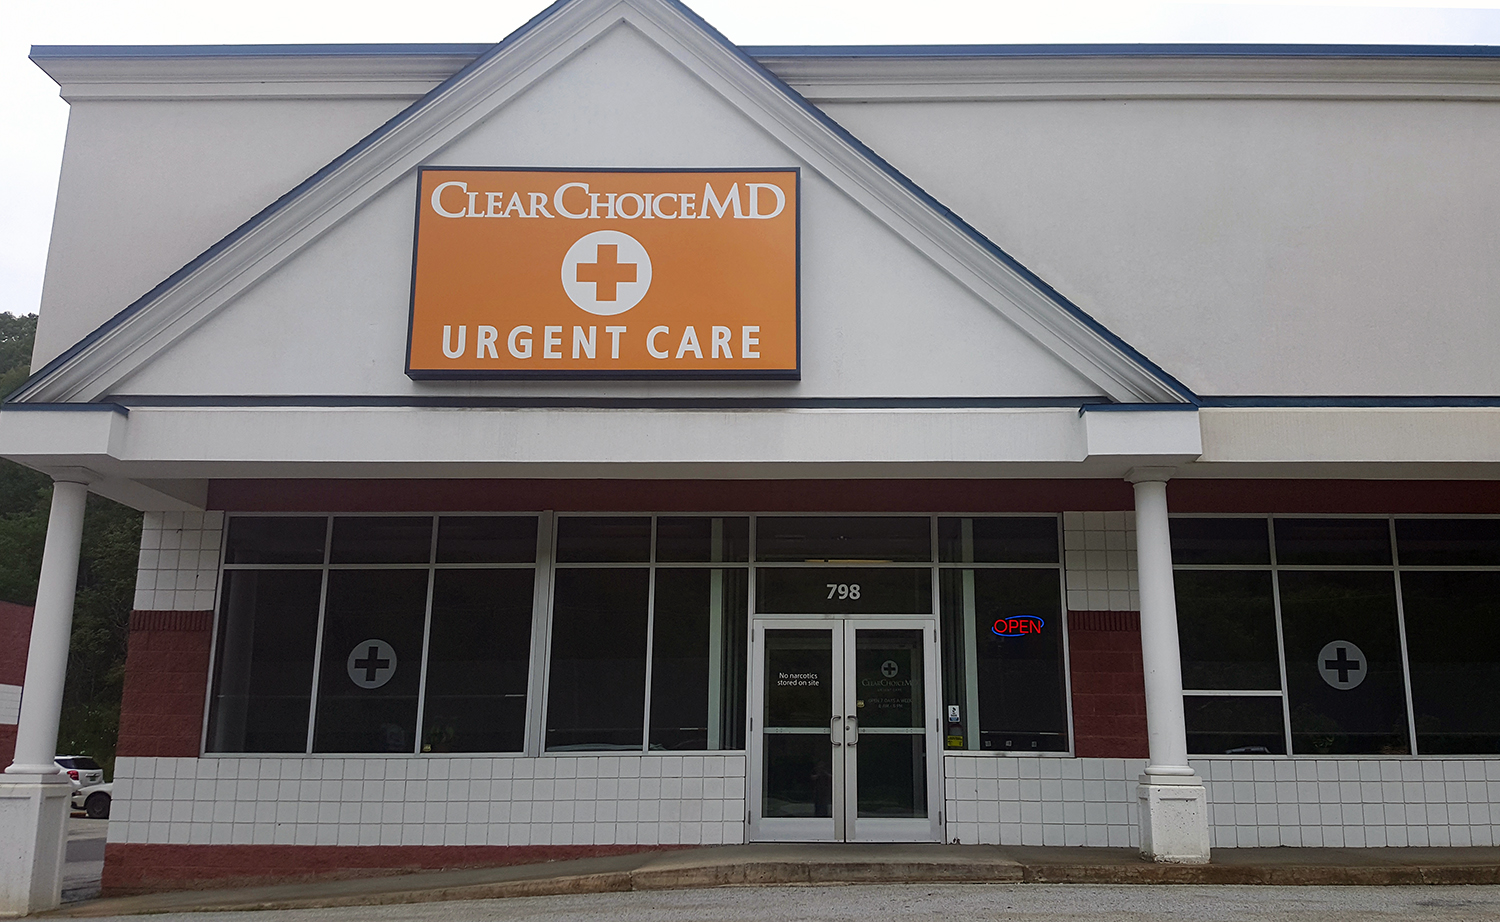 ClearChoiceMD Urgent Care (Berlin, VT) - #0